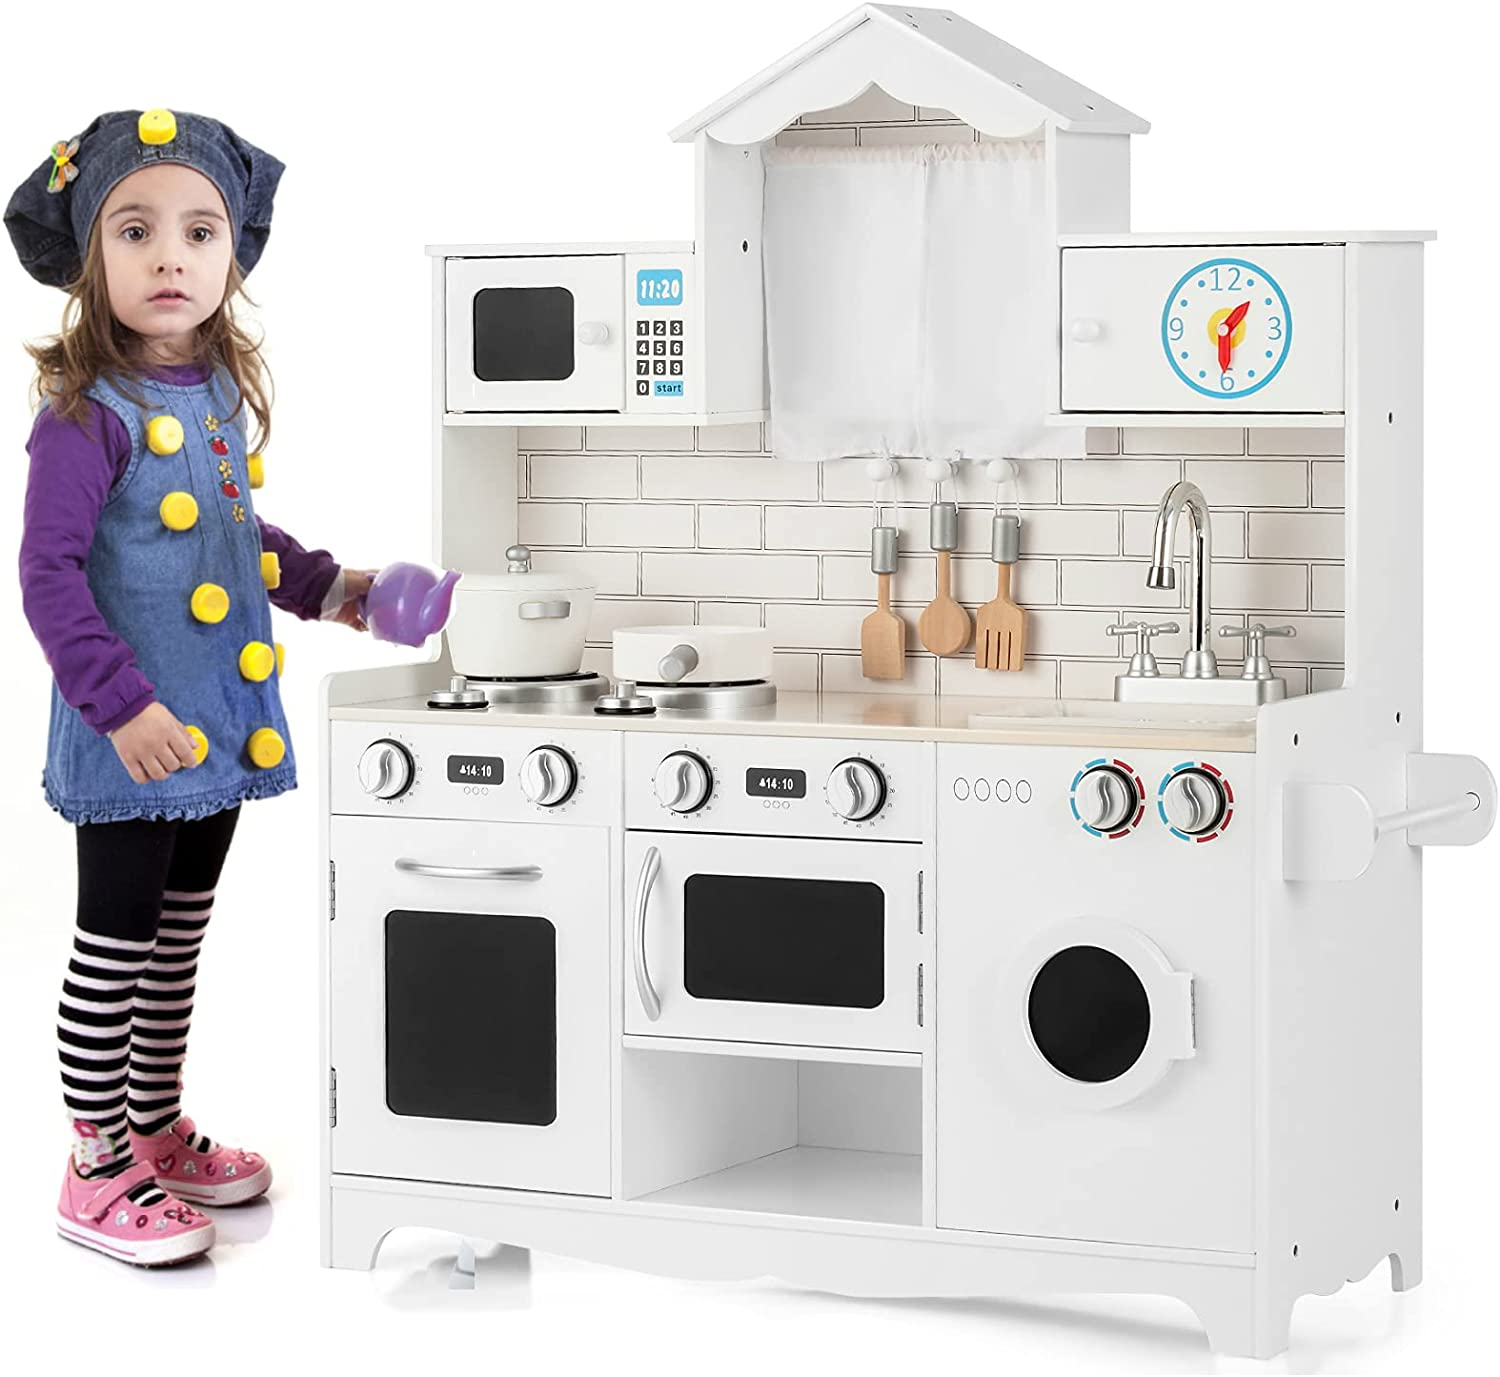 HONEY Max 88% OFF JOY Play Kitchen for Kitc Pretend Fresno Mall Toddlers Wooden Rooftop